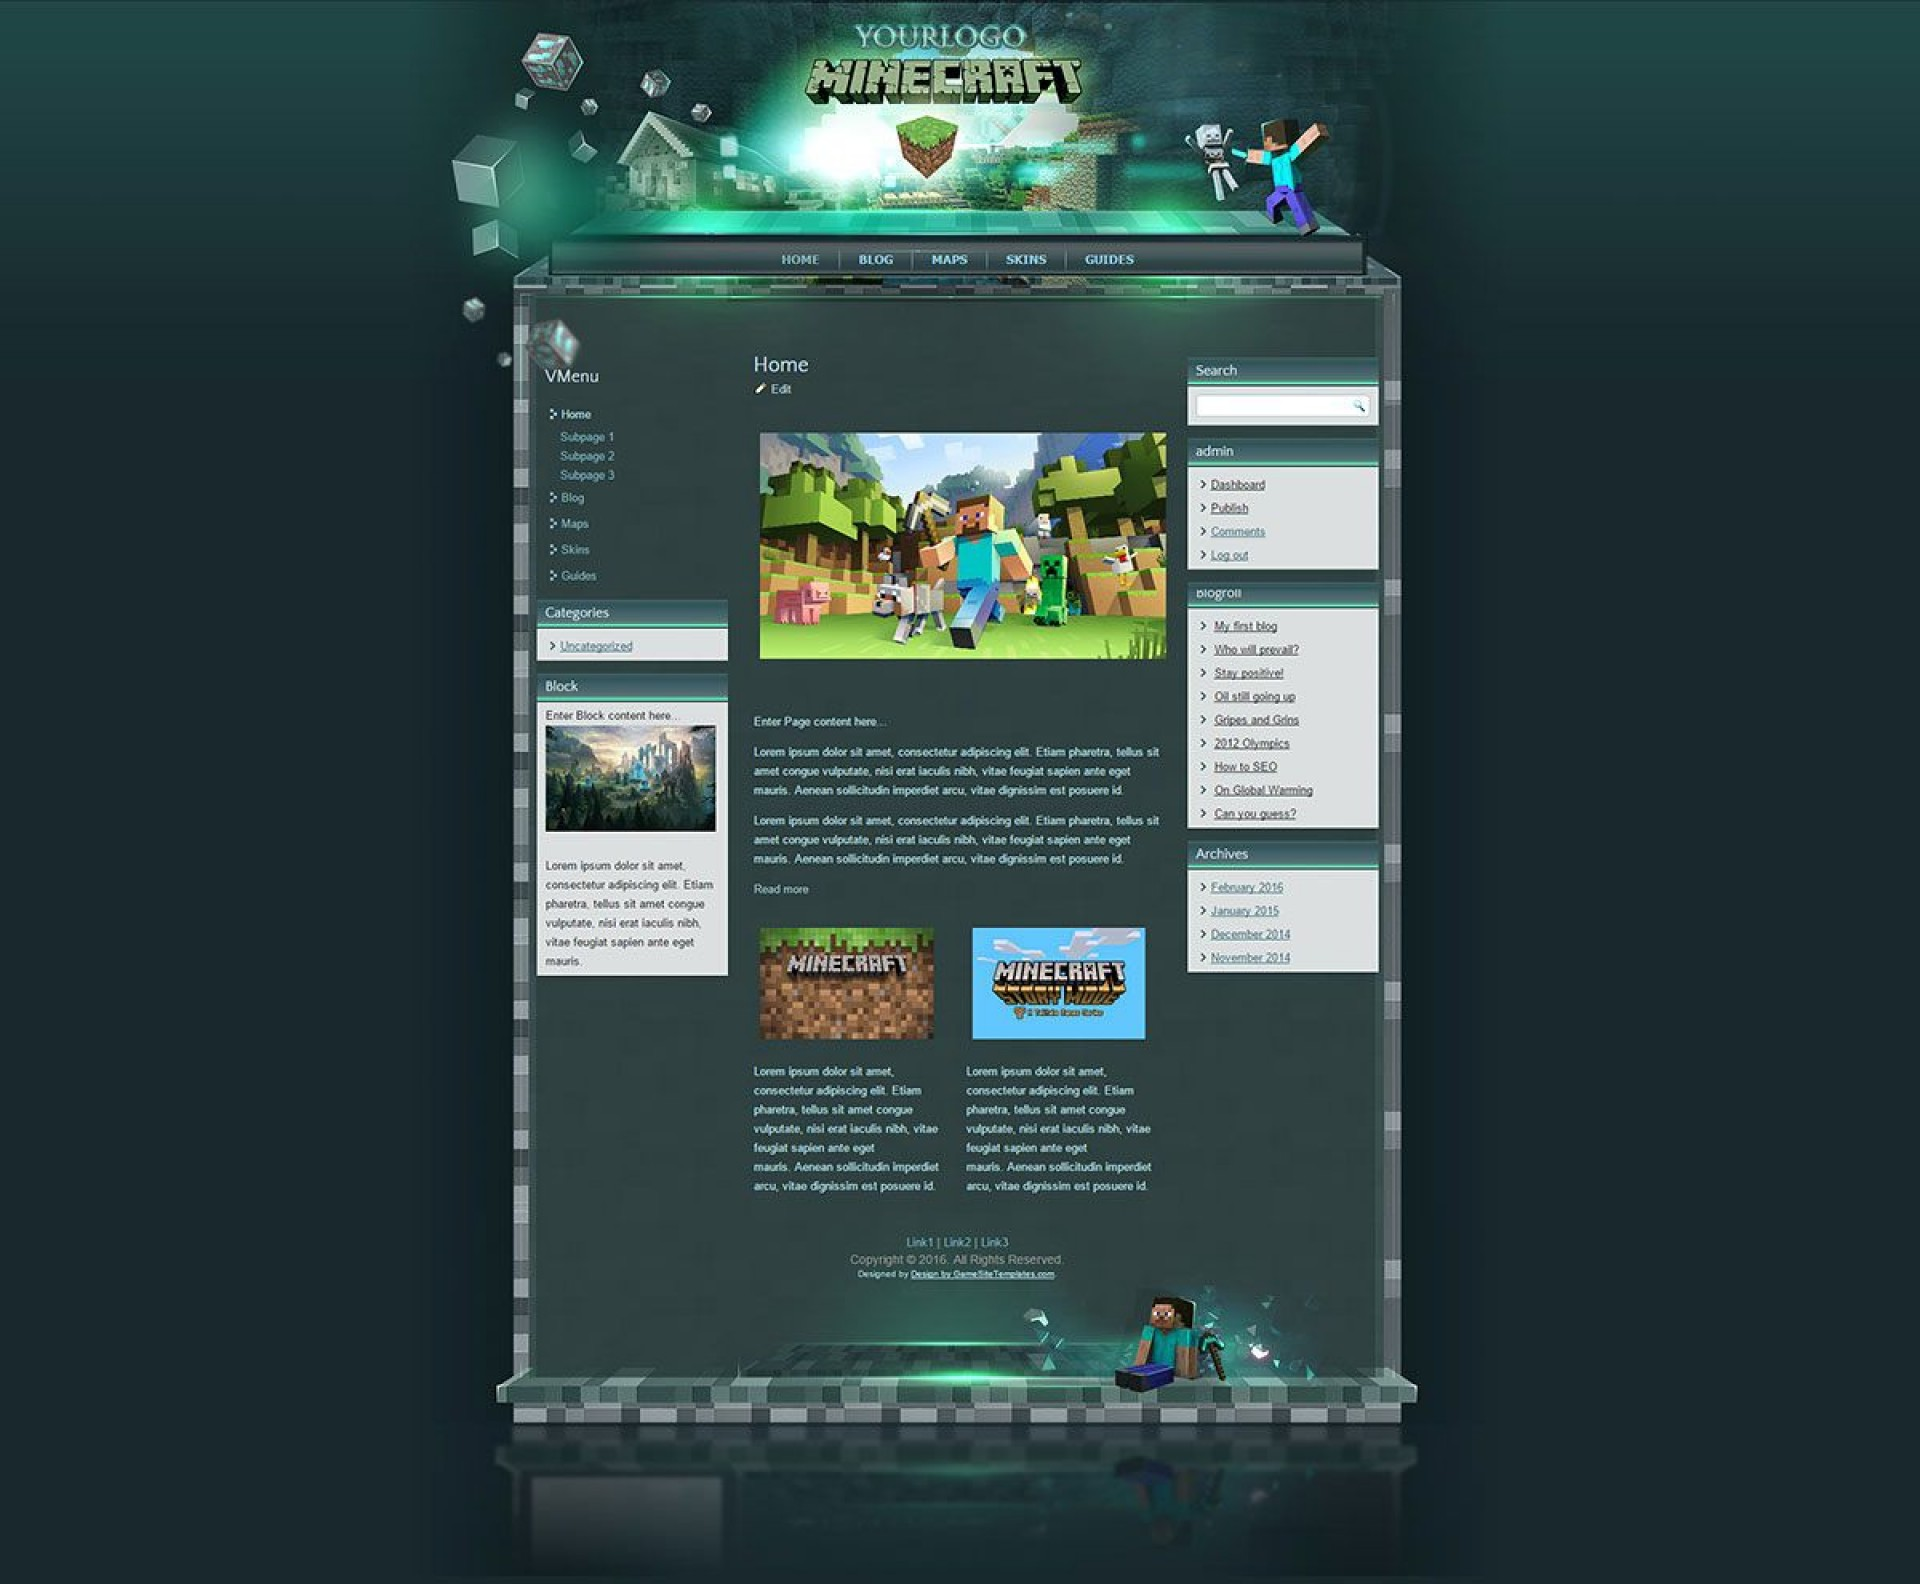 002 Fascinating Minecraft Website Template Html Free Download Photo 1920